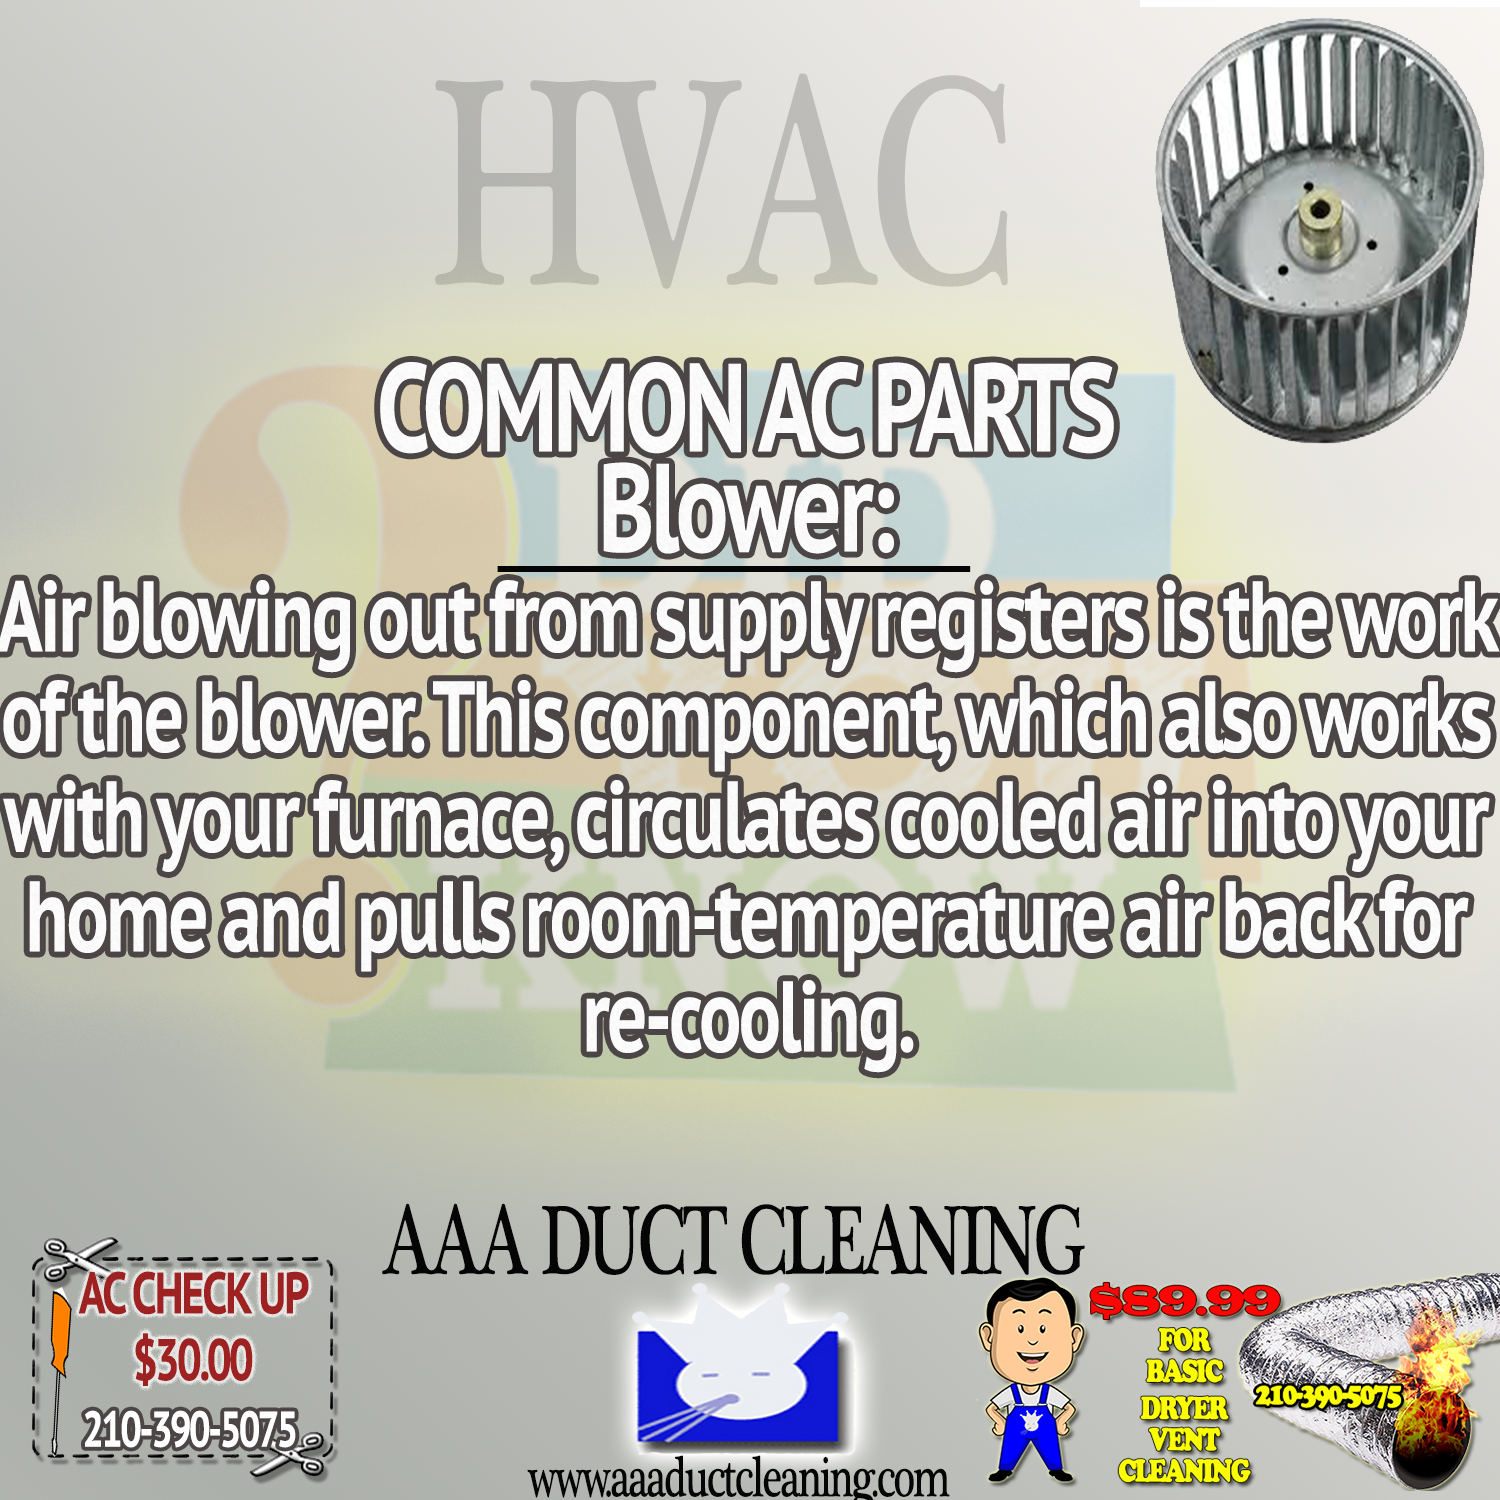 Maintenance Hvac Http Www Aaaductcleaning Com Http Www